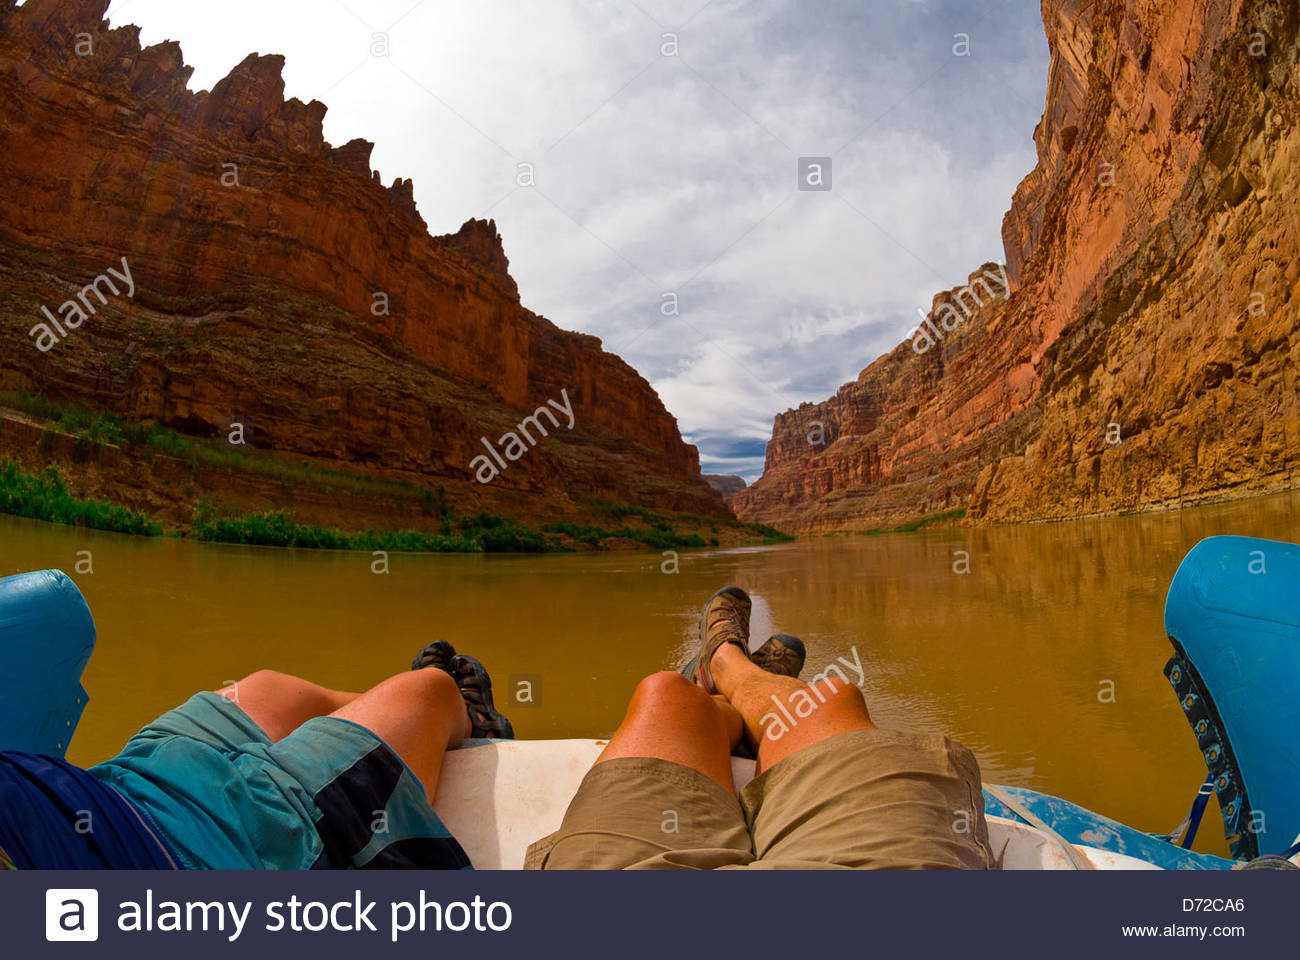 Cove Canyon, Colorado River, Glen Canyon National Recreation Area, Utah USA Photo Stock